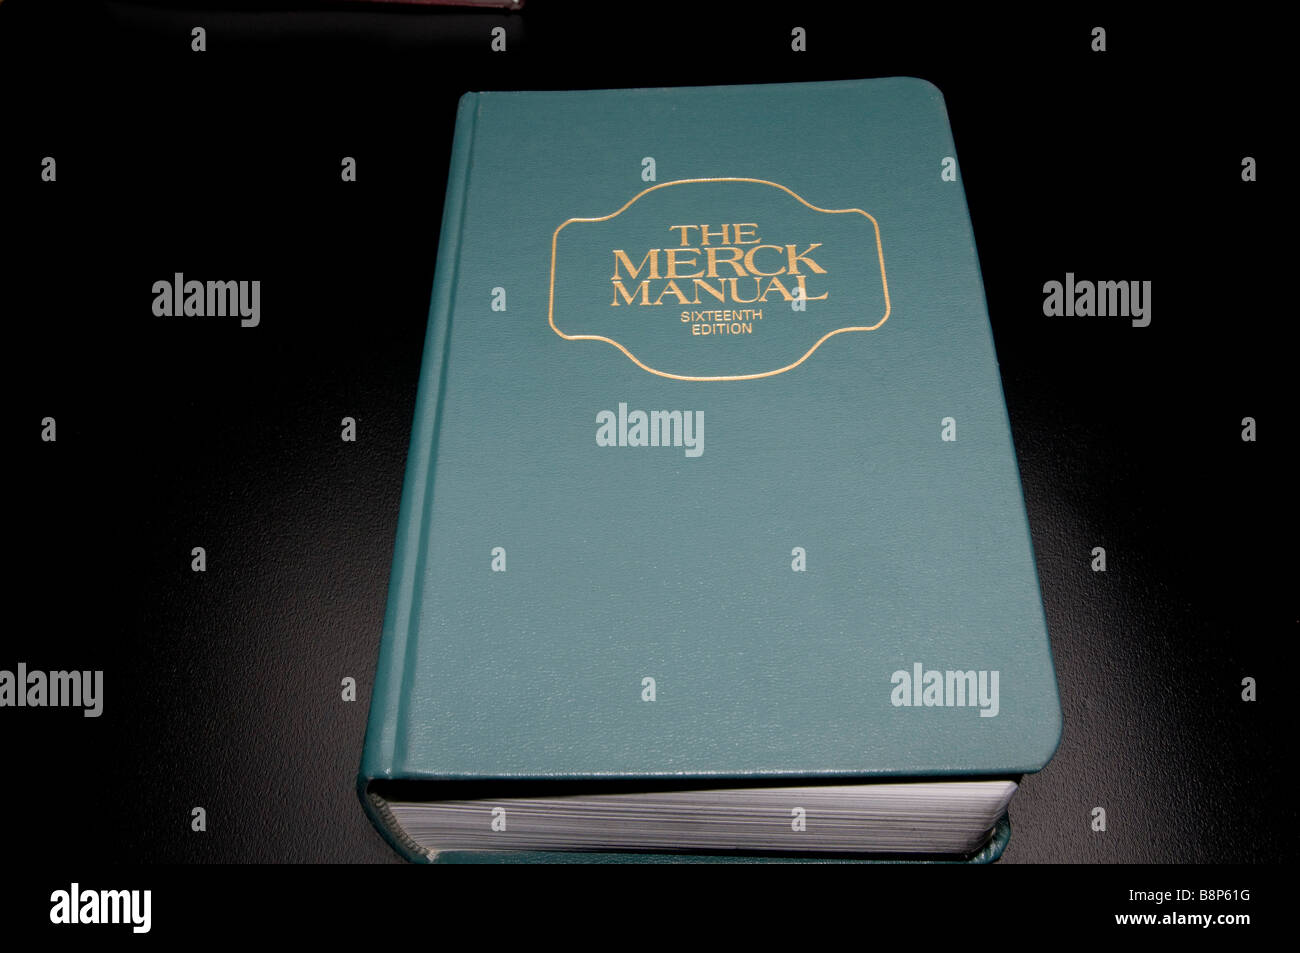 The Merck Manual of Diagnosis and Therapy on black background - Stock Image